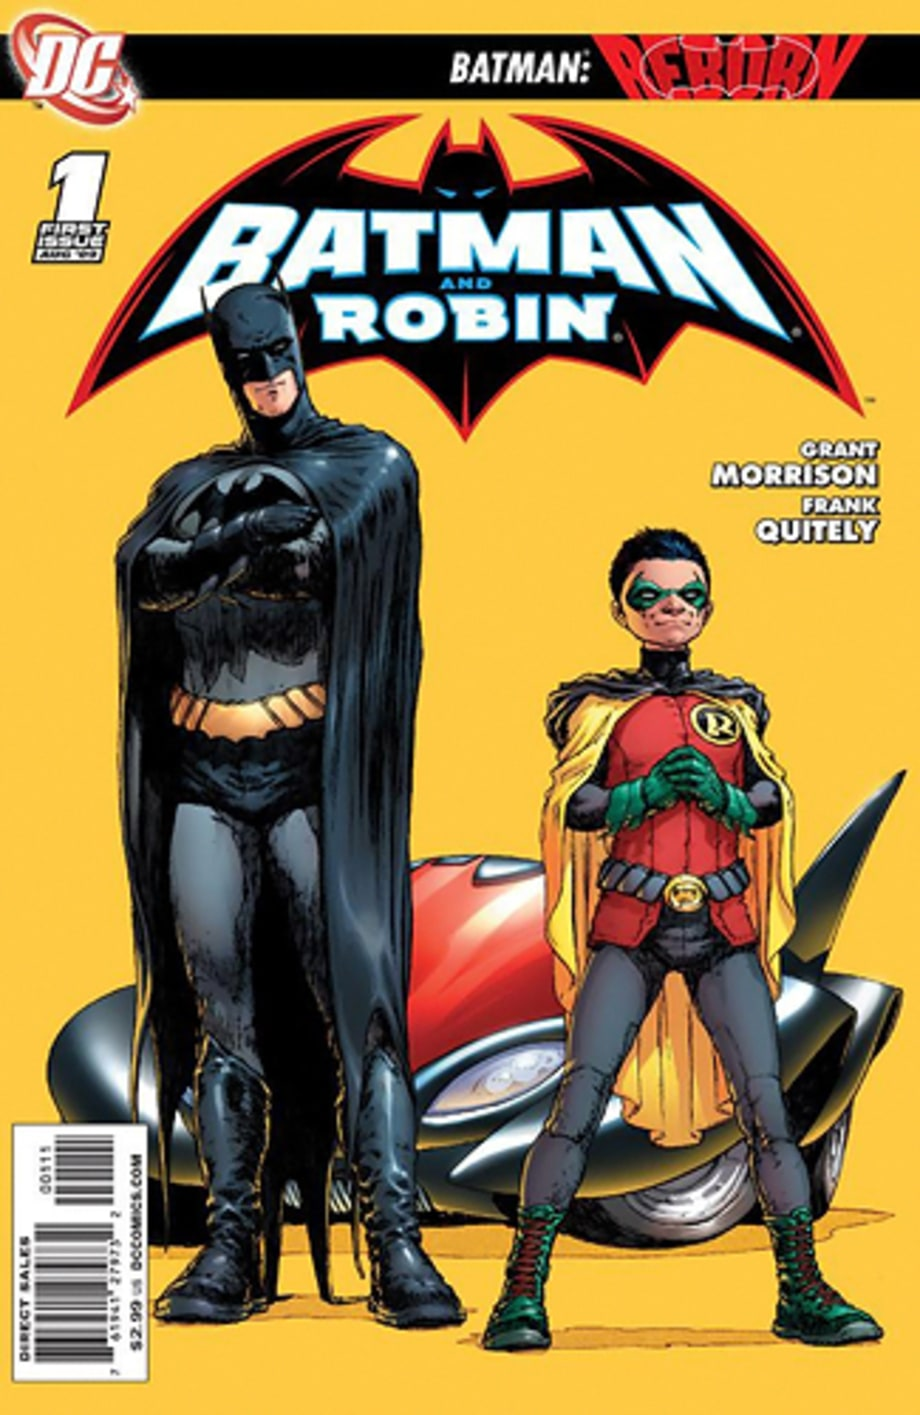 13. 'Batman and Robin Vol. 1: Batman Reborn'